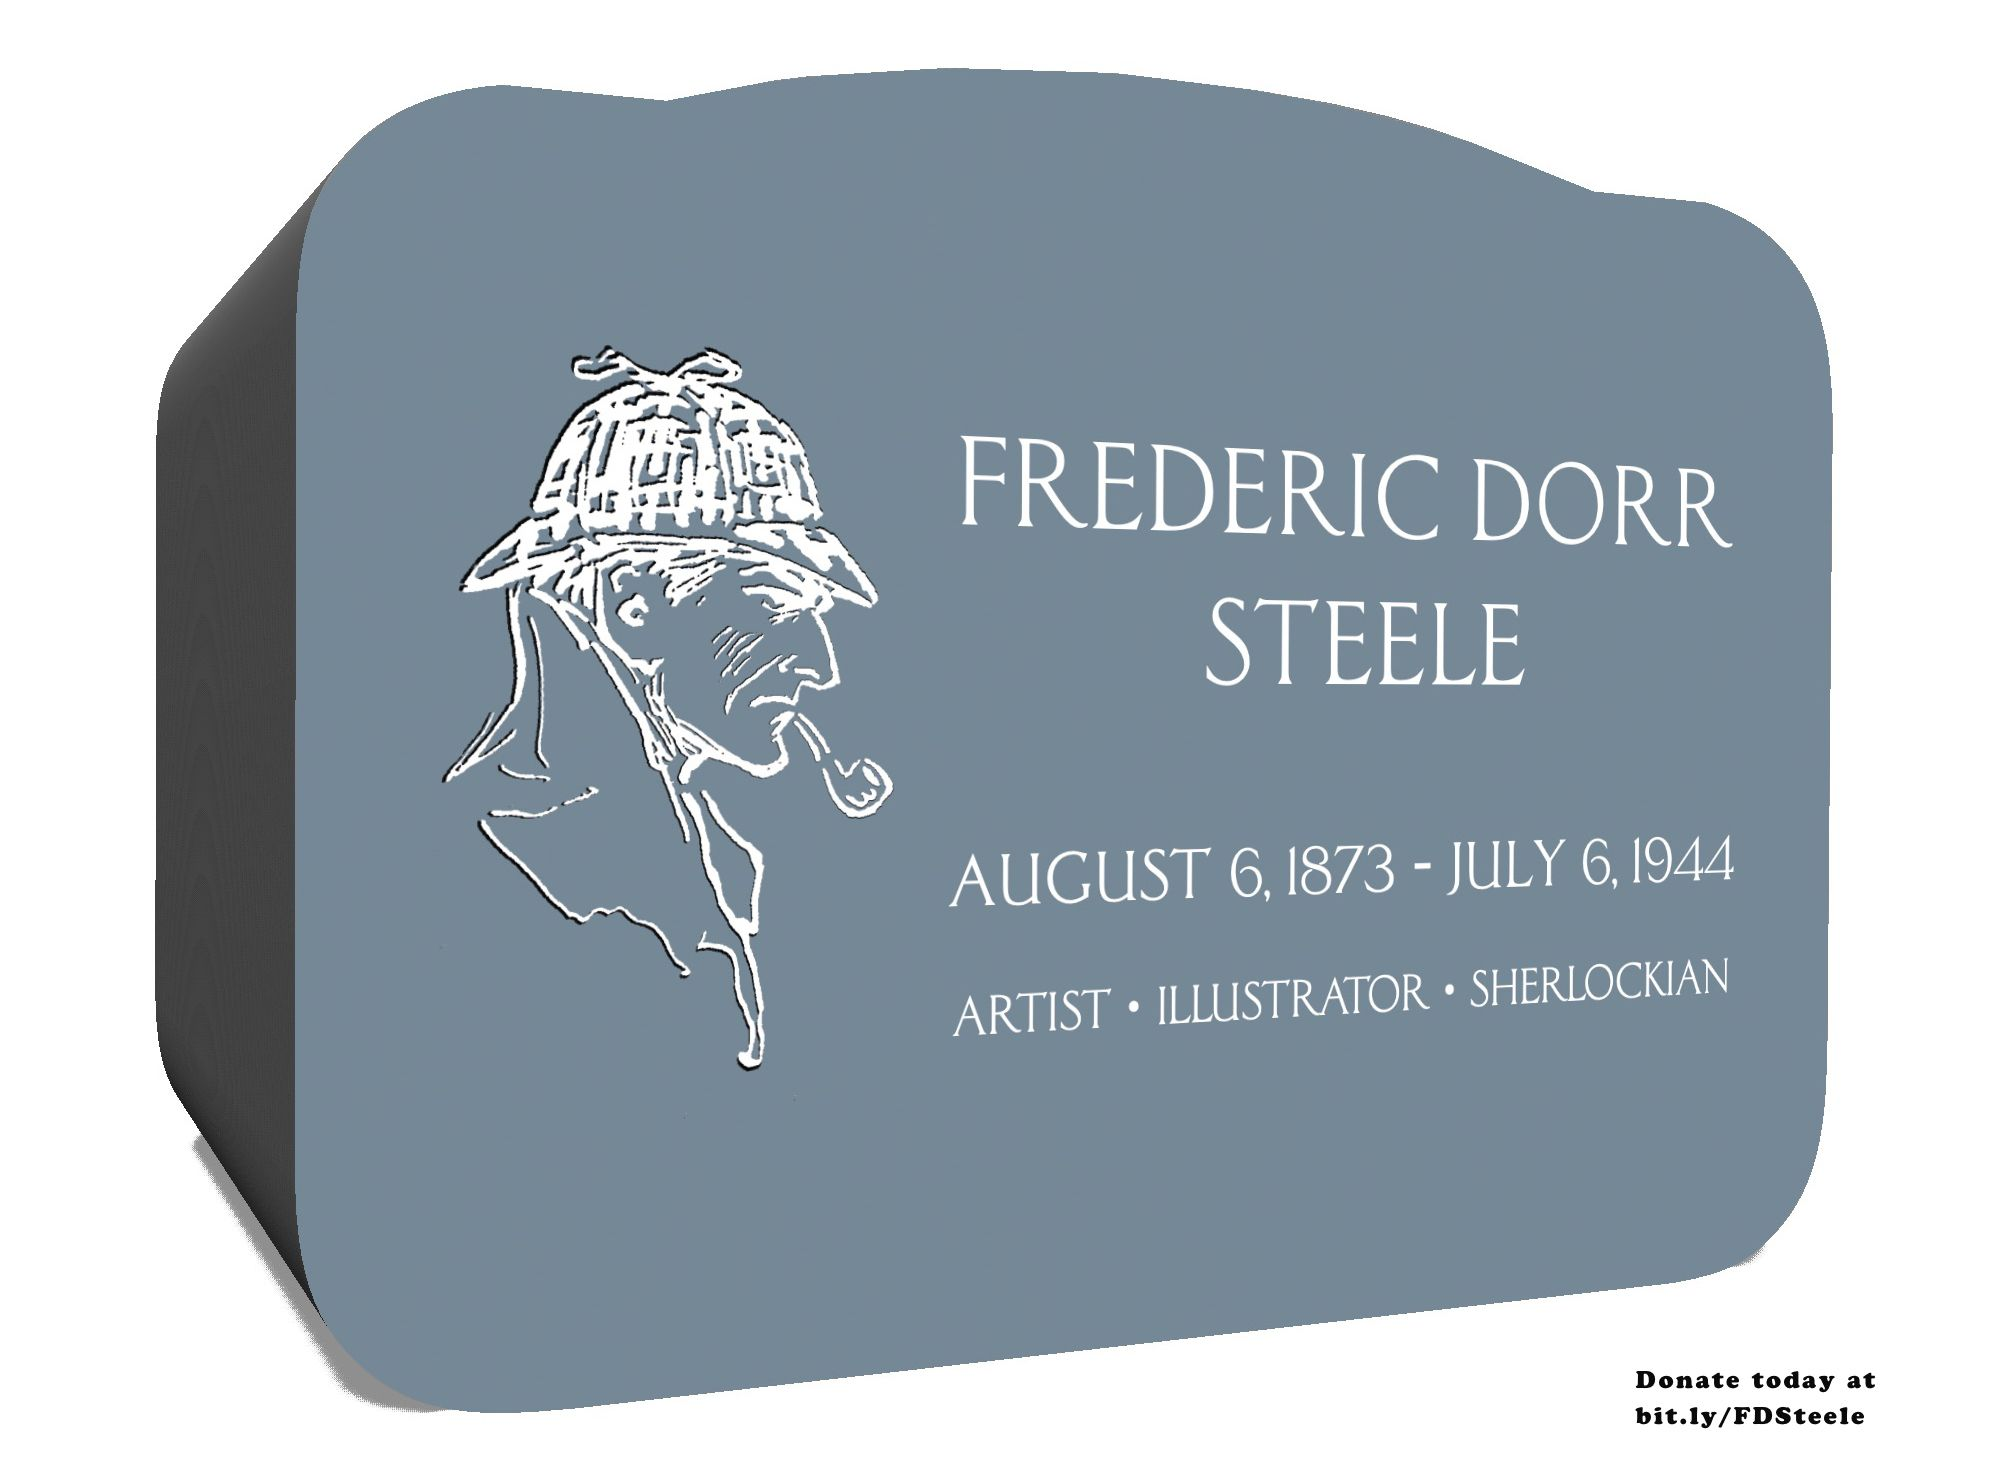 Help Erect The Frederic Dorr Steele Memorial